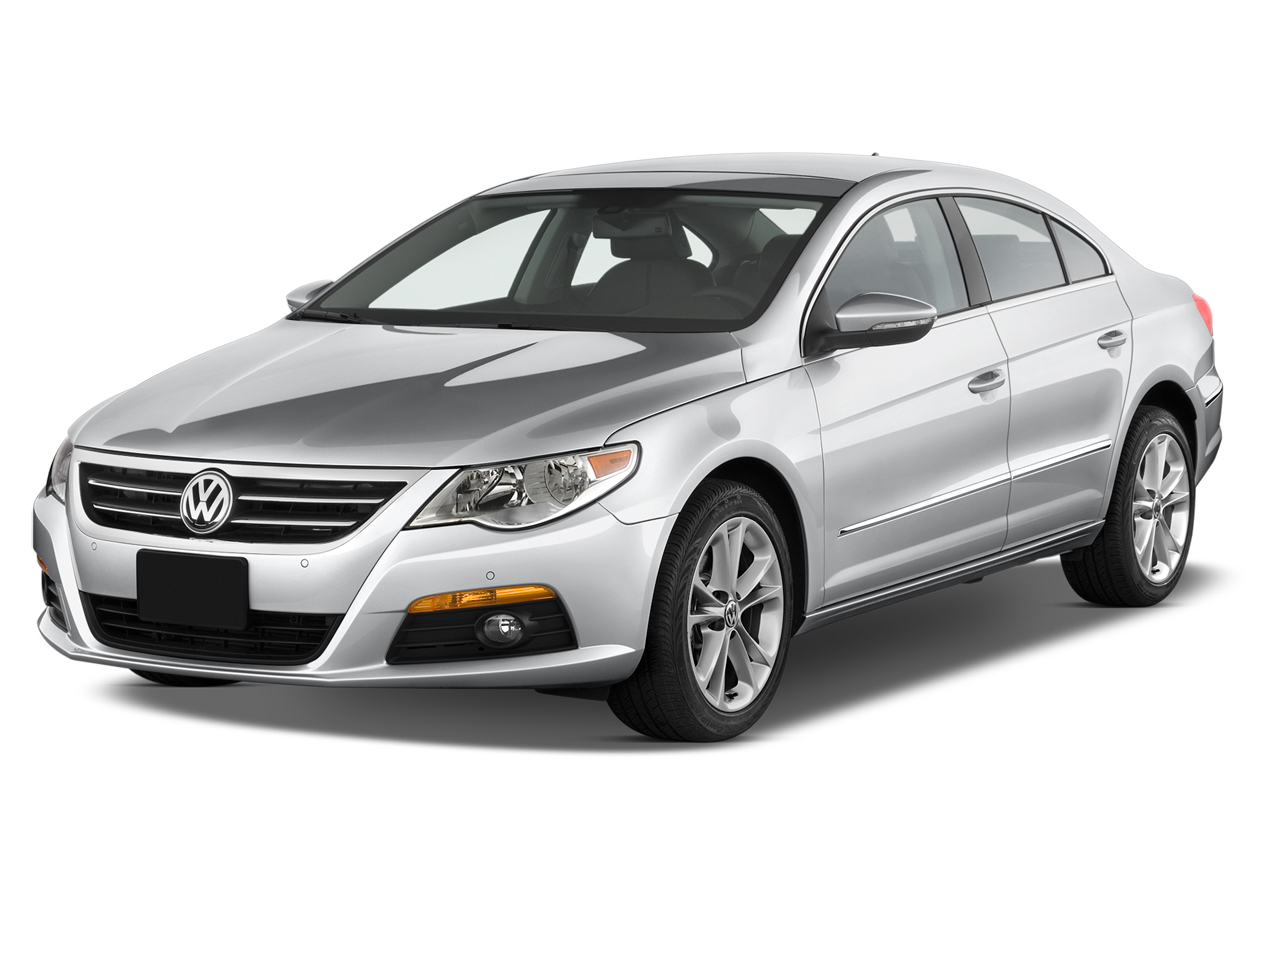 2012 volkswagen cc vw review and news motorauthority. Black Bedroom Furniture Sets. Home Design Ideas